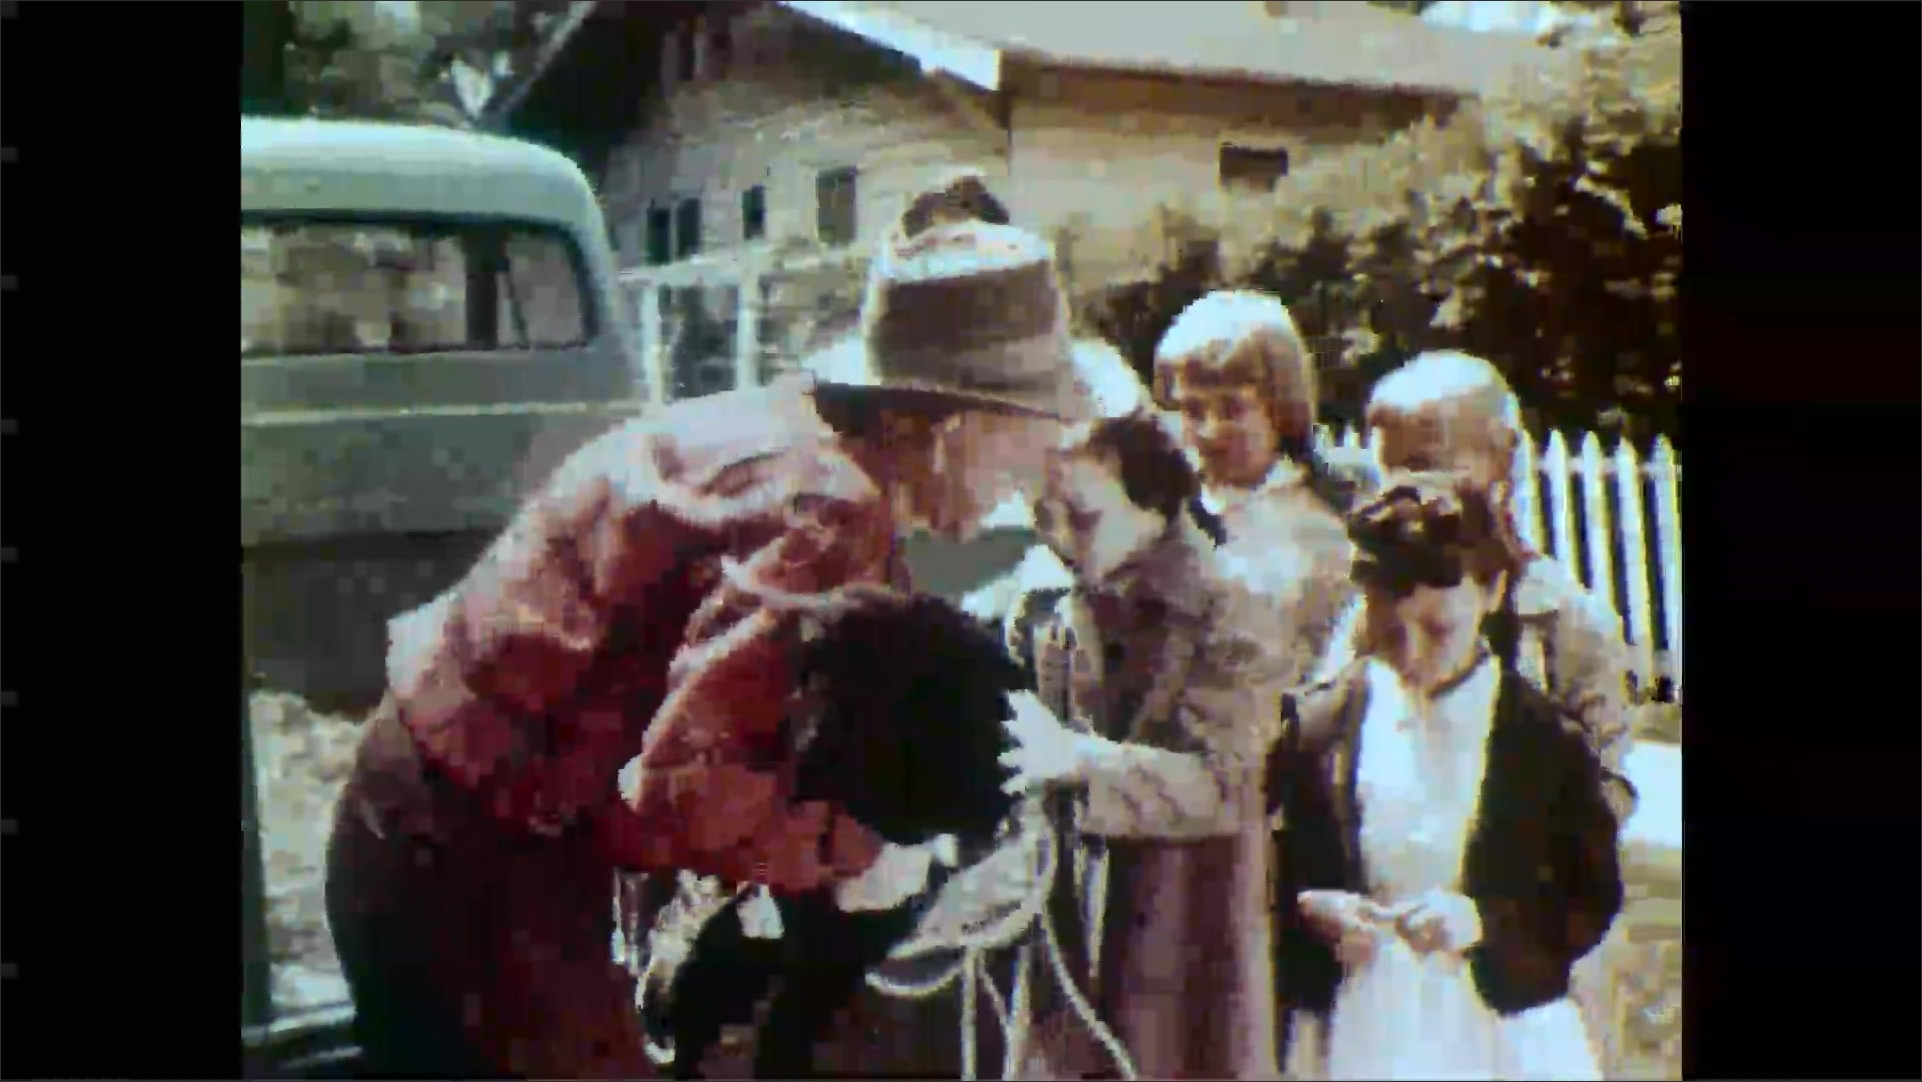 1950s: Girl looks down as man lifts lamb from back of truck. Girls rush to pet lamb on truck. Man carries lamb off truck.